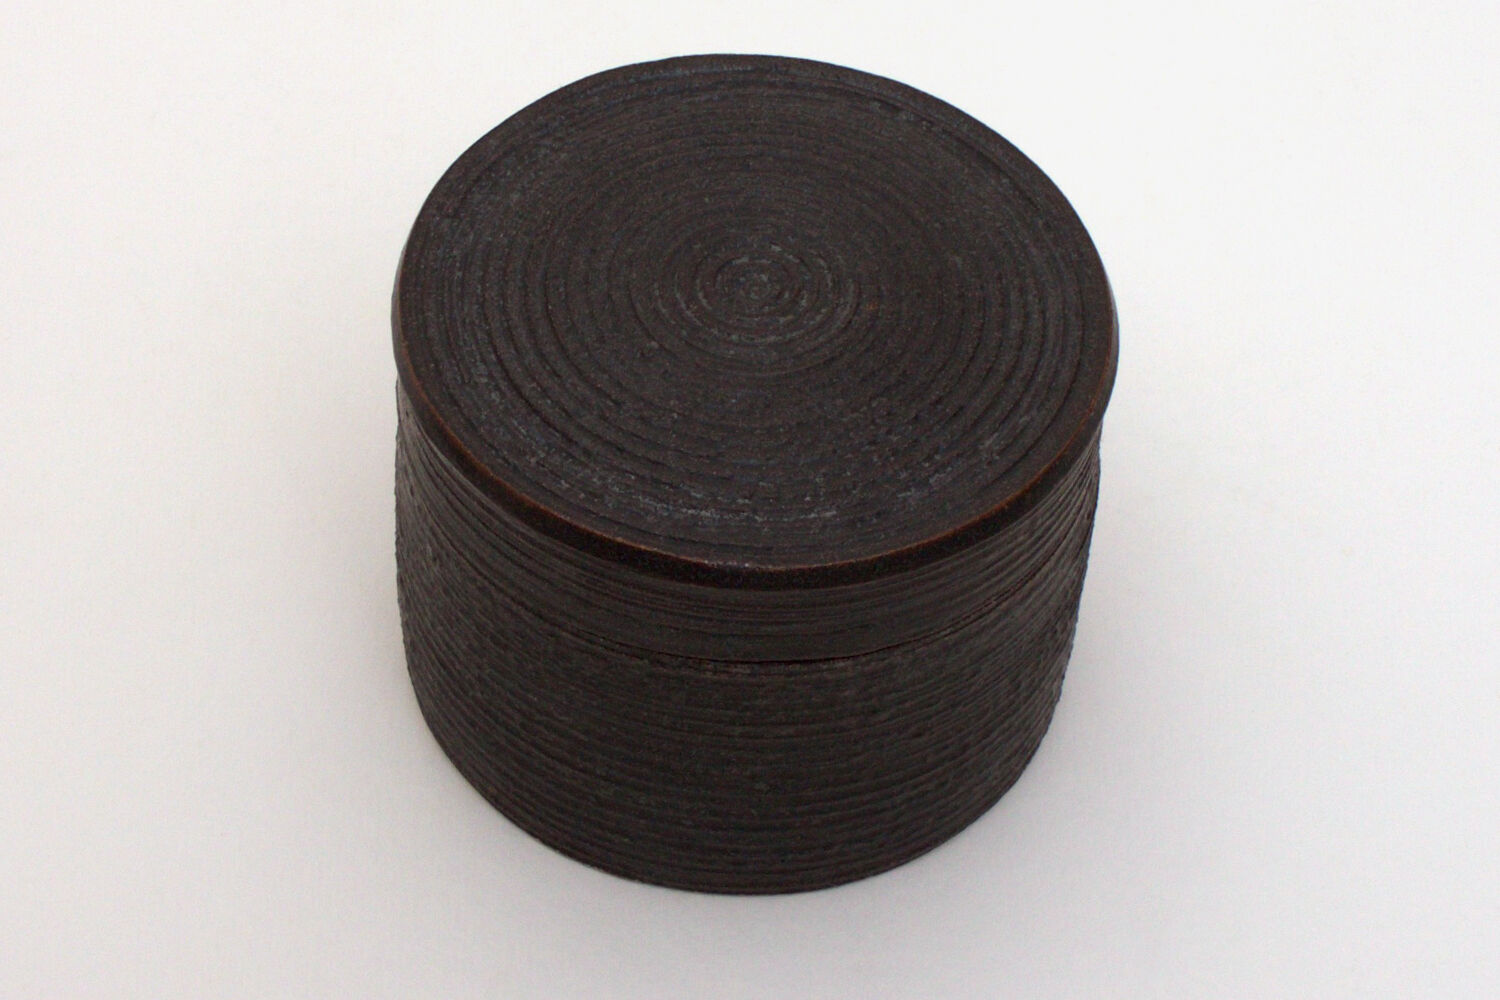 Chris Carter Ceramic Grooved Box 033